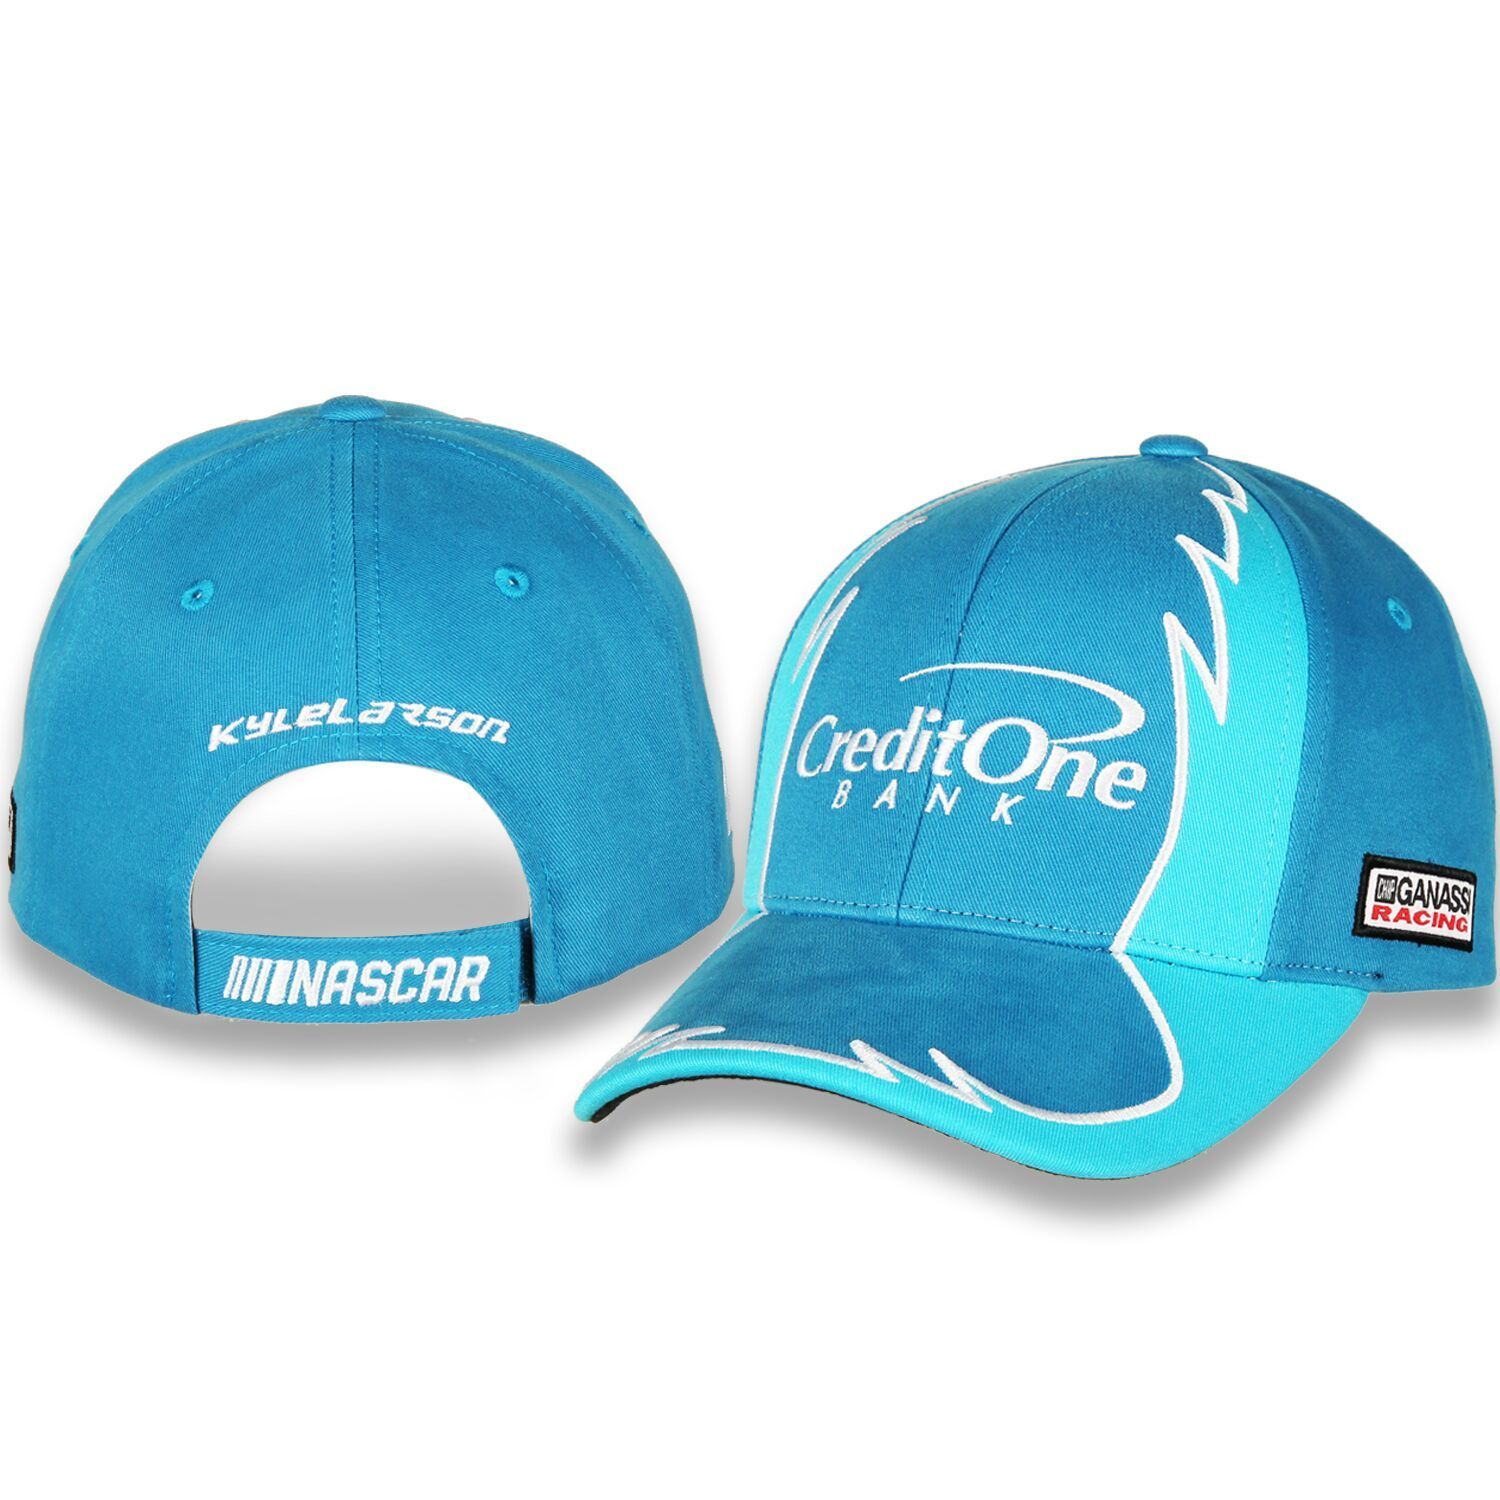 "2018 Kyle Larson Credit One Bank ""Jagged"" hat"